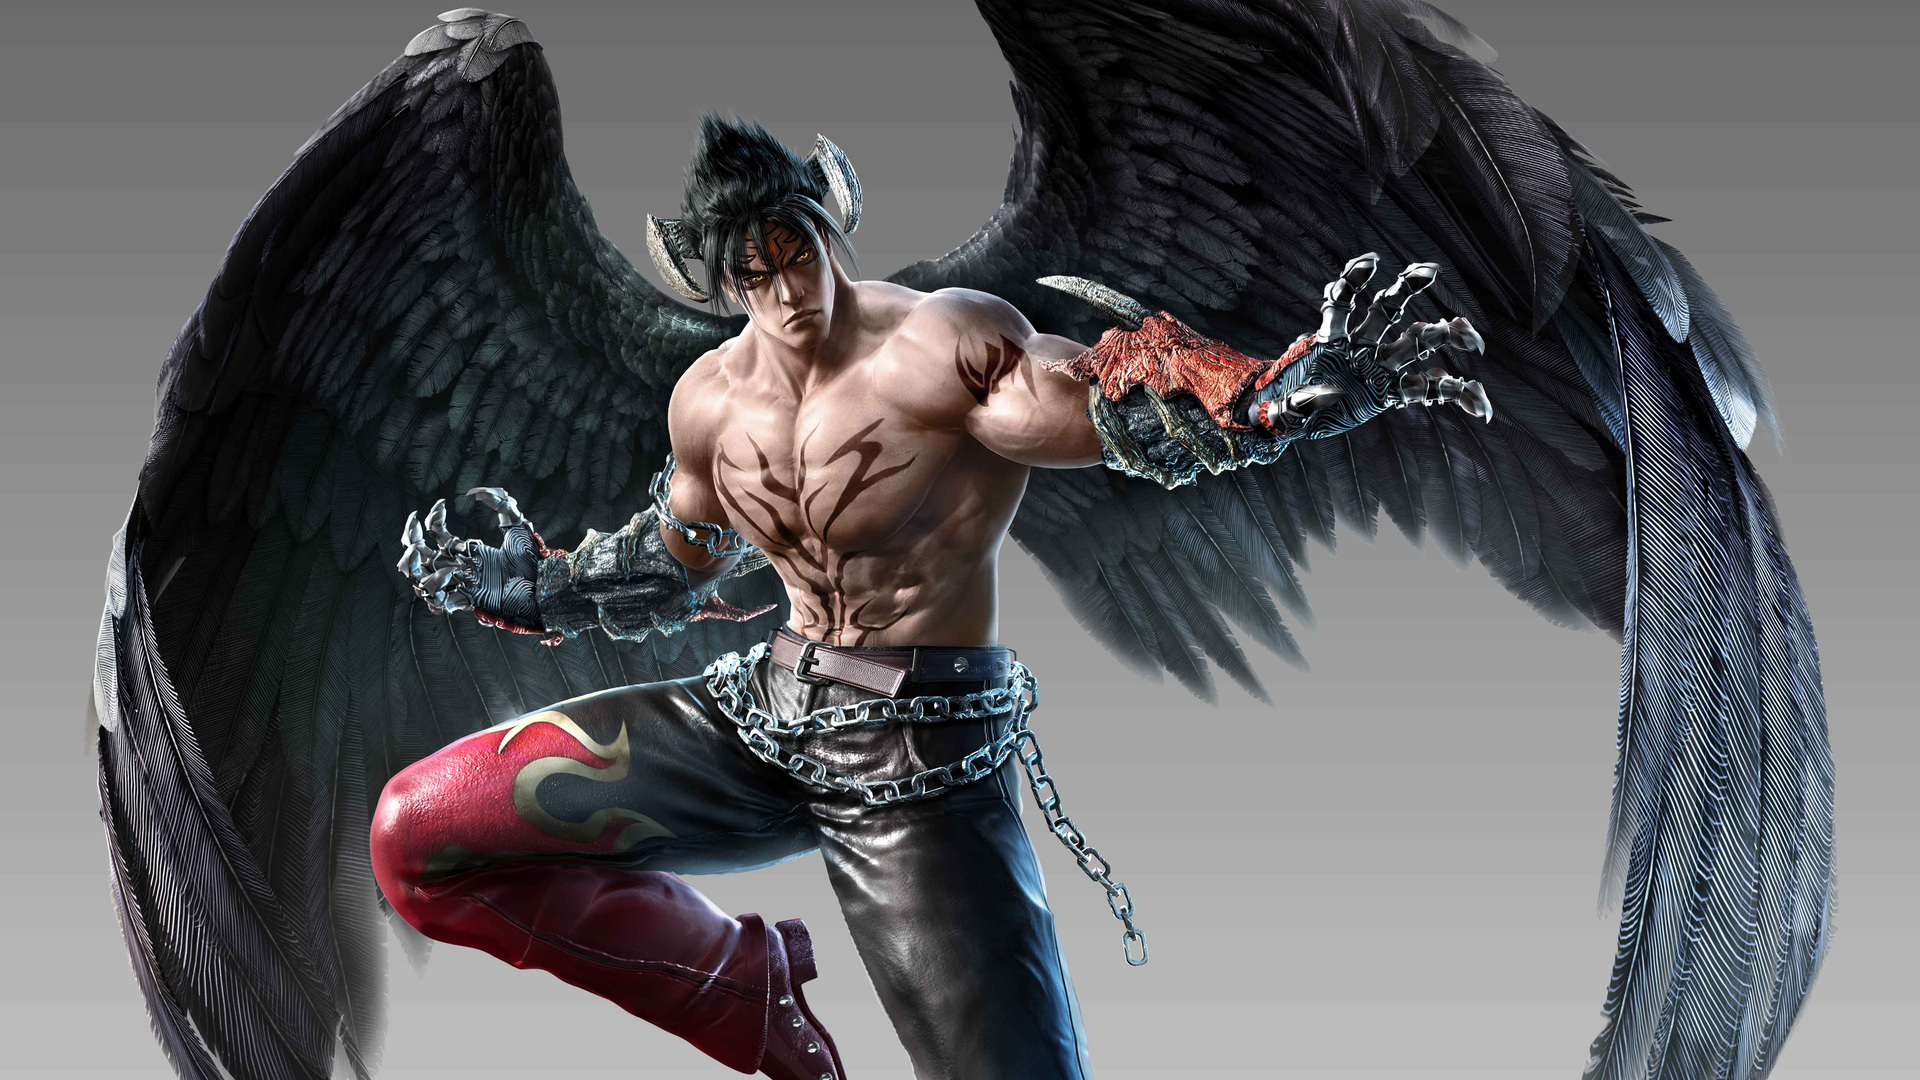 1920x1080 Jin Kazama Tekken 7 5k Laptop Full Hd 1080p Hd 4k